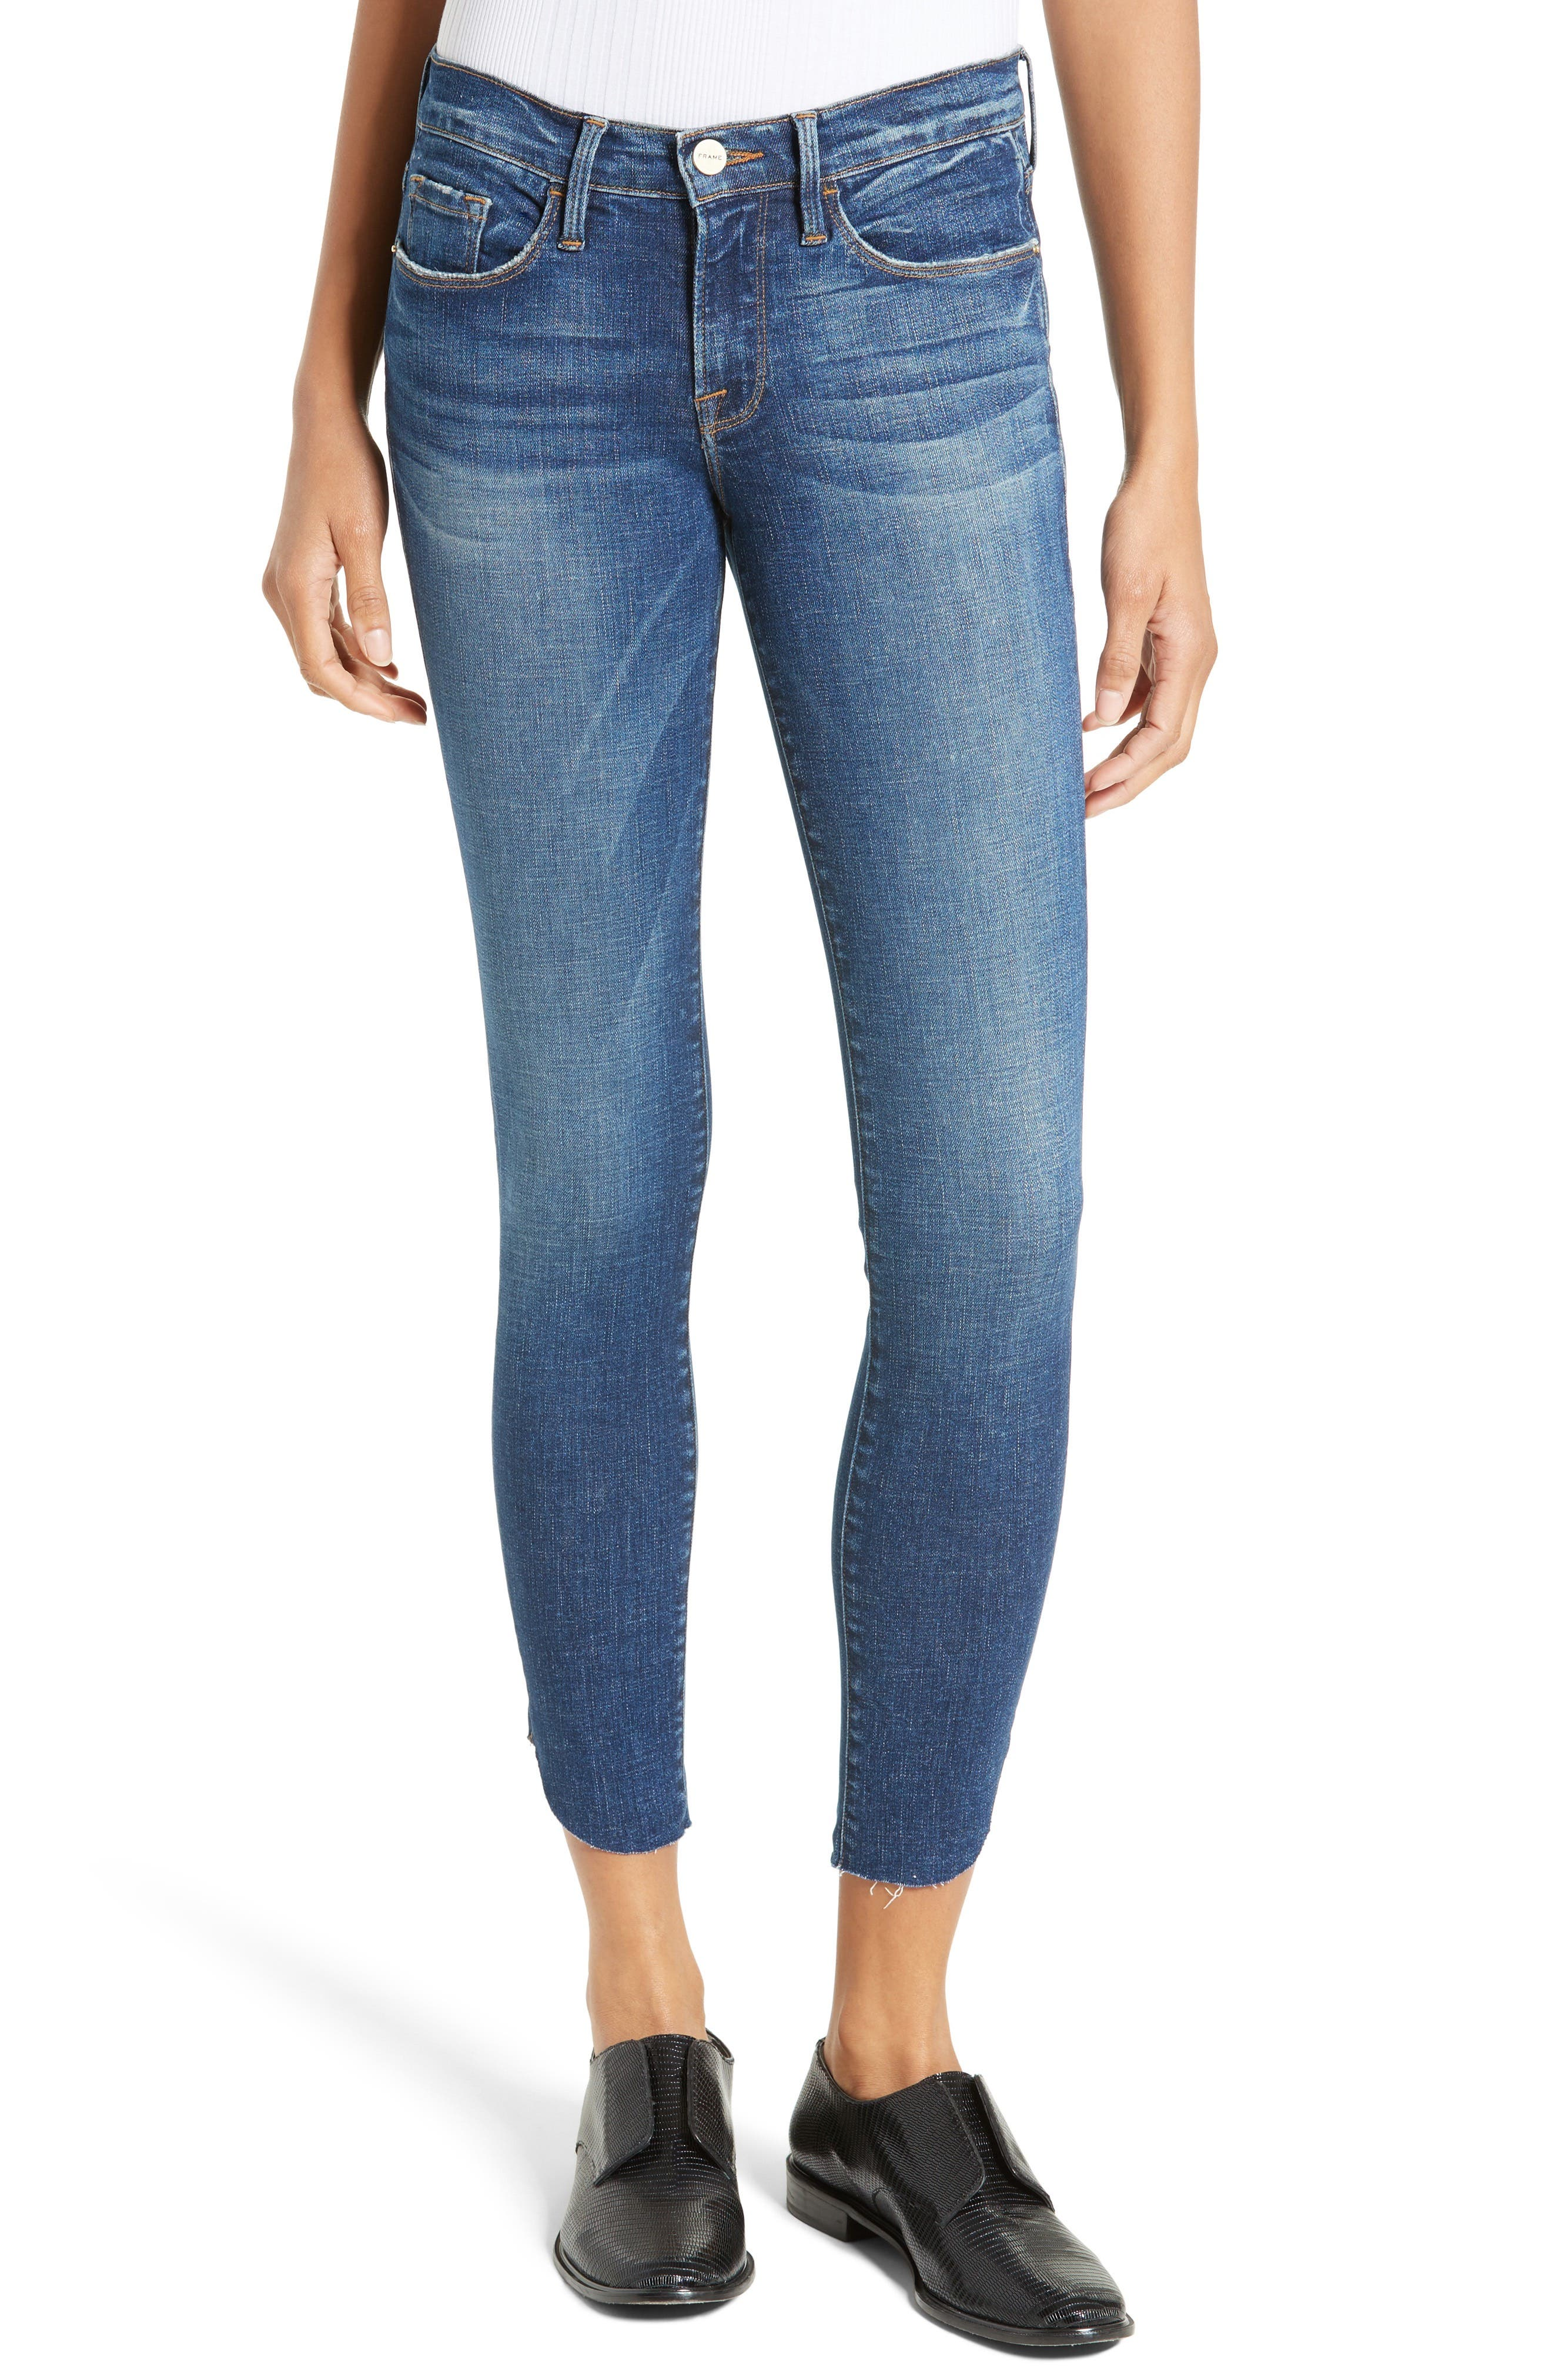 Alternate Image 1 Selected - FRAME Le Skinny Raw Tulip Crop Jeans (York) (Nordstrom Exclusive)